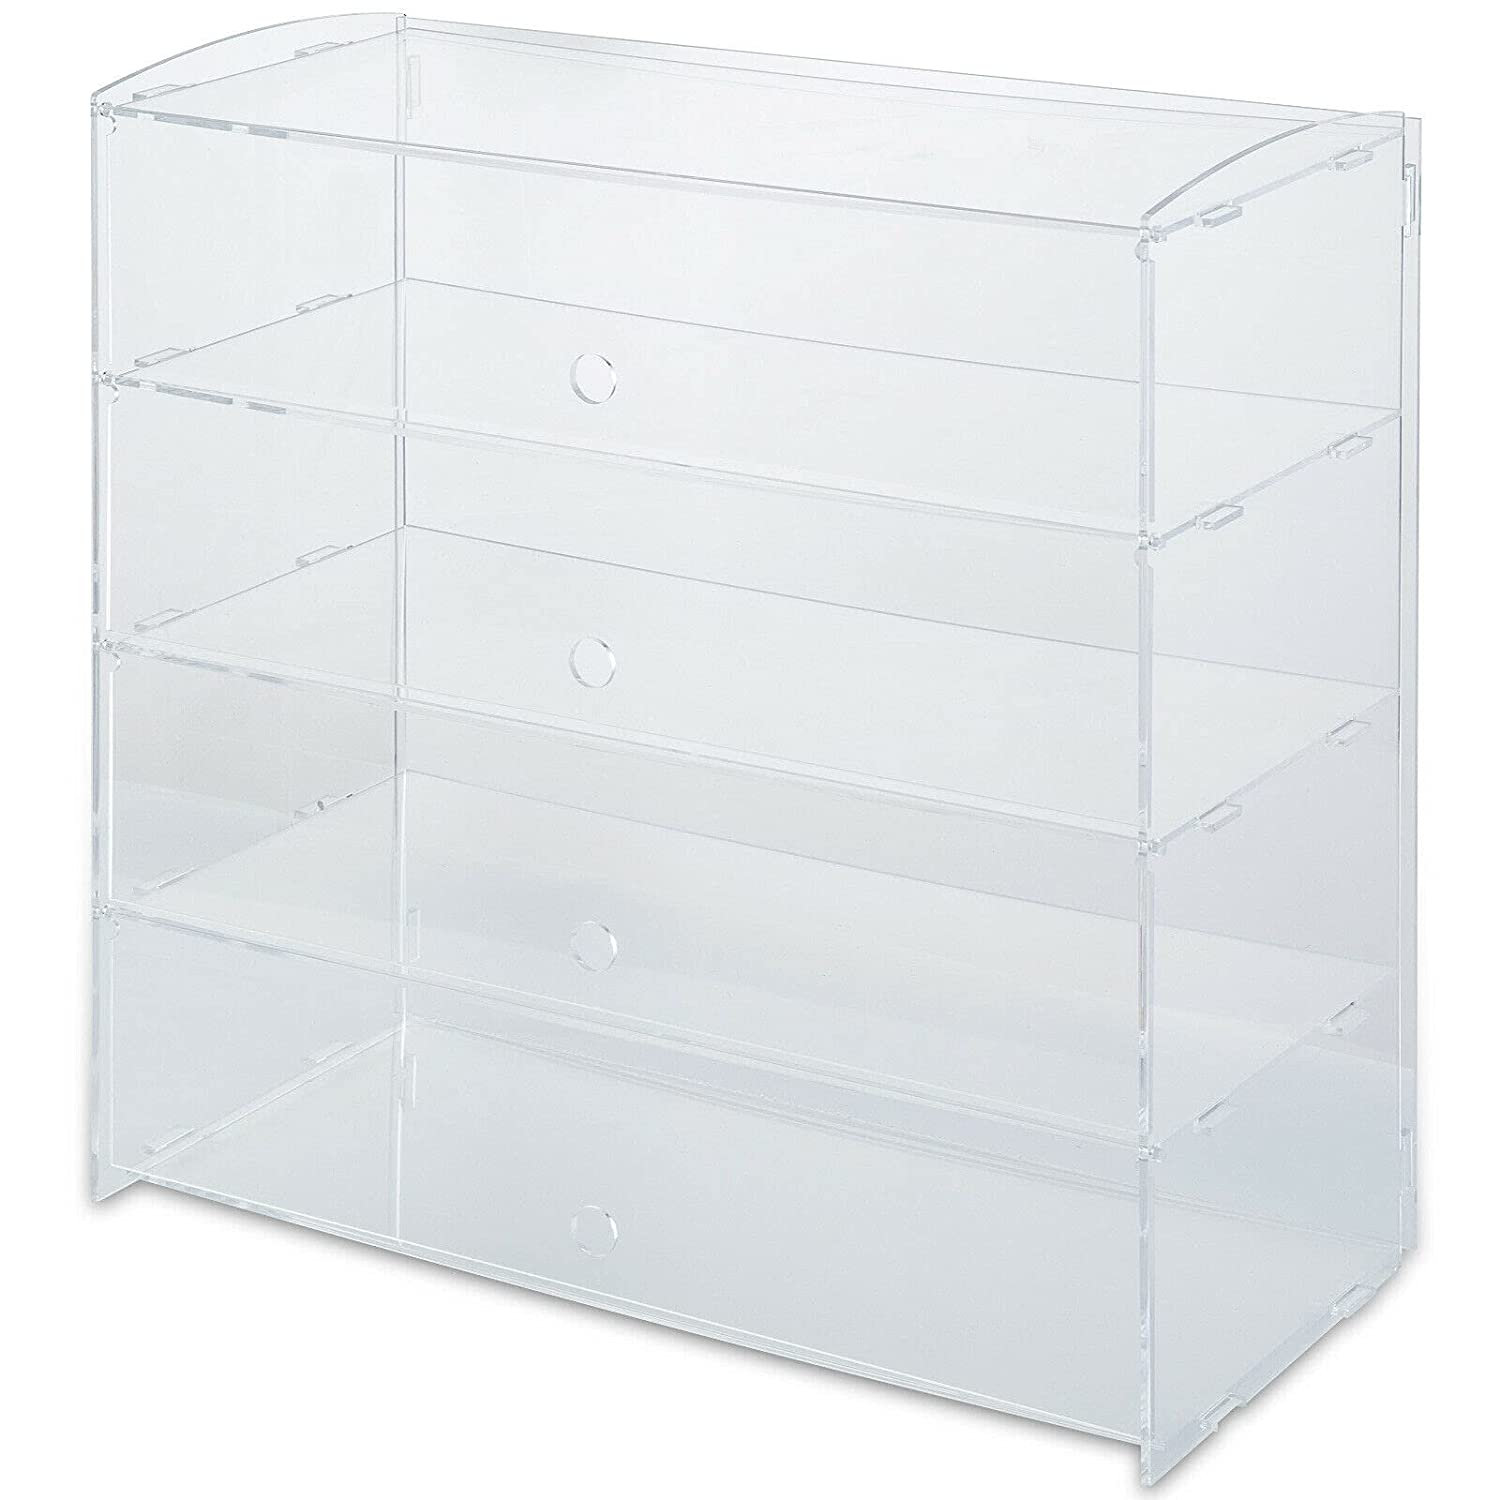 4 Tier Buildable Acrylic Bakery Cabinet Display Pastry Cake New mart Free Shipping Case